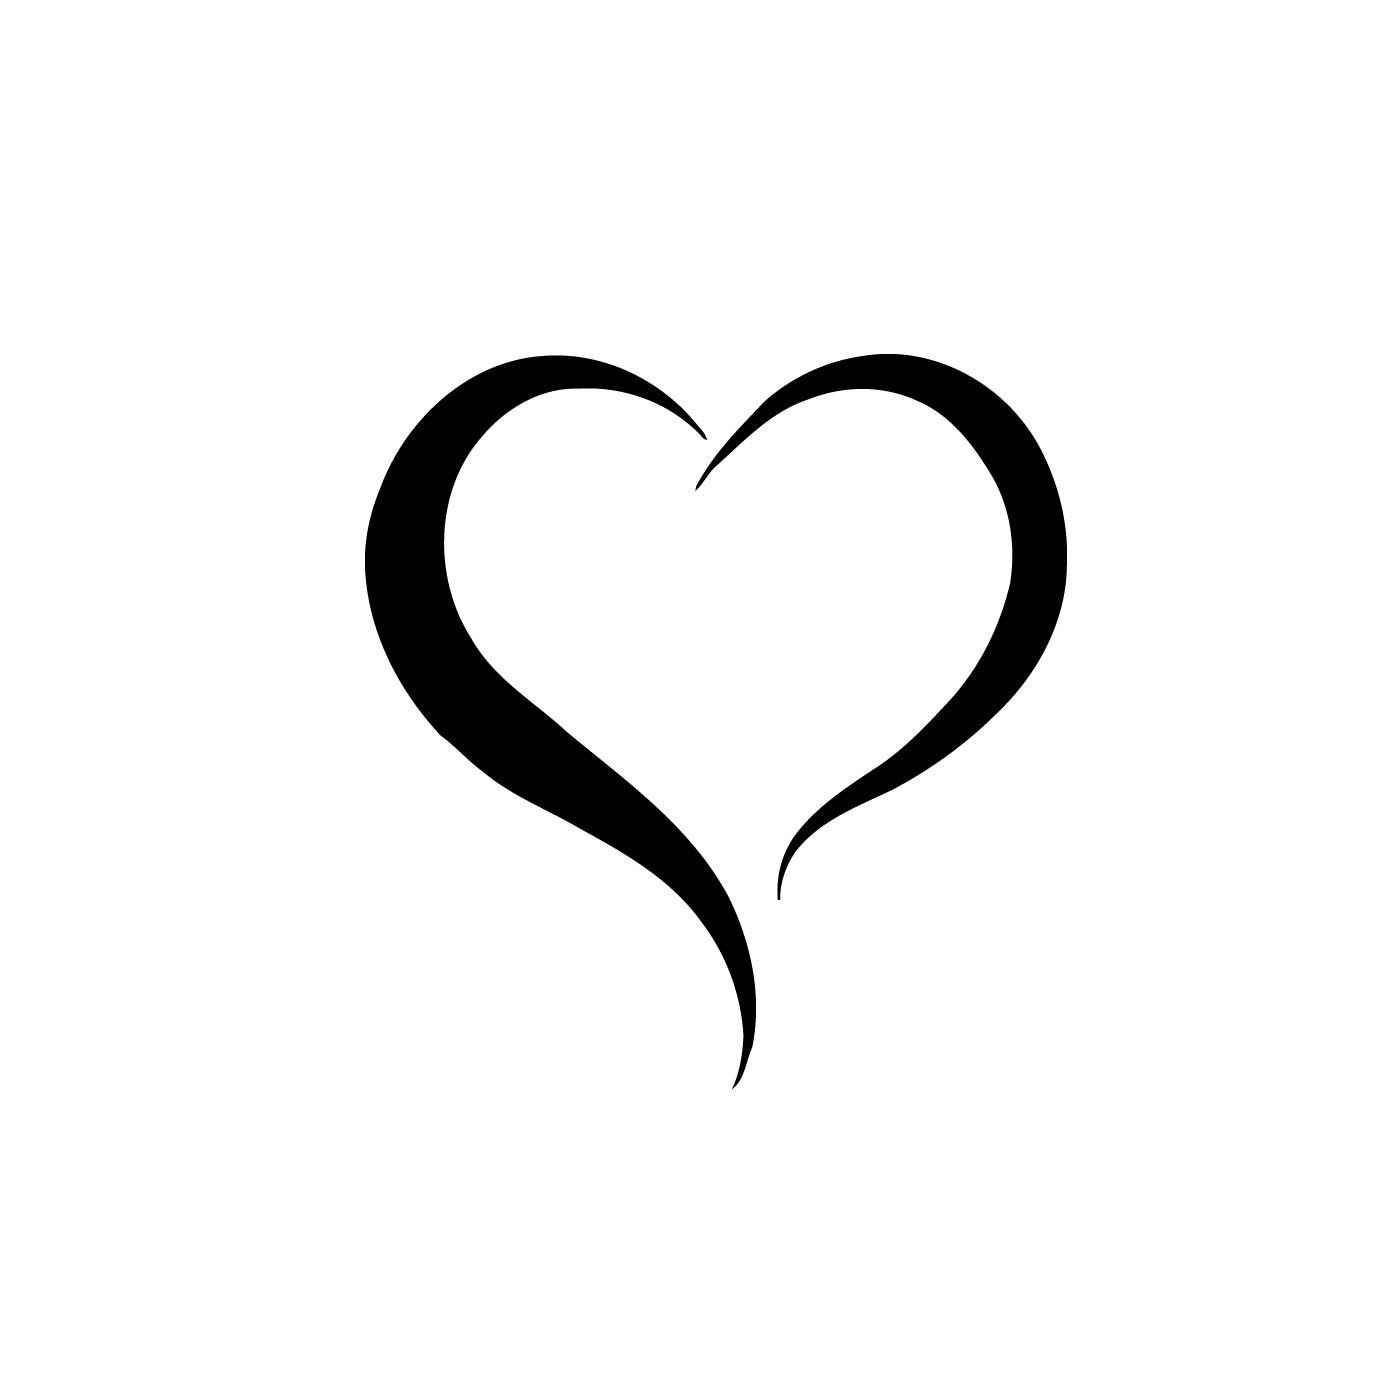 Two Lines Heart Vinyl Wall Art Products Tatuajes Ideas And Designs